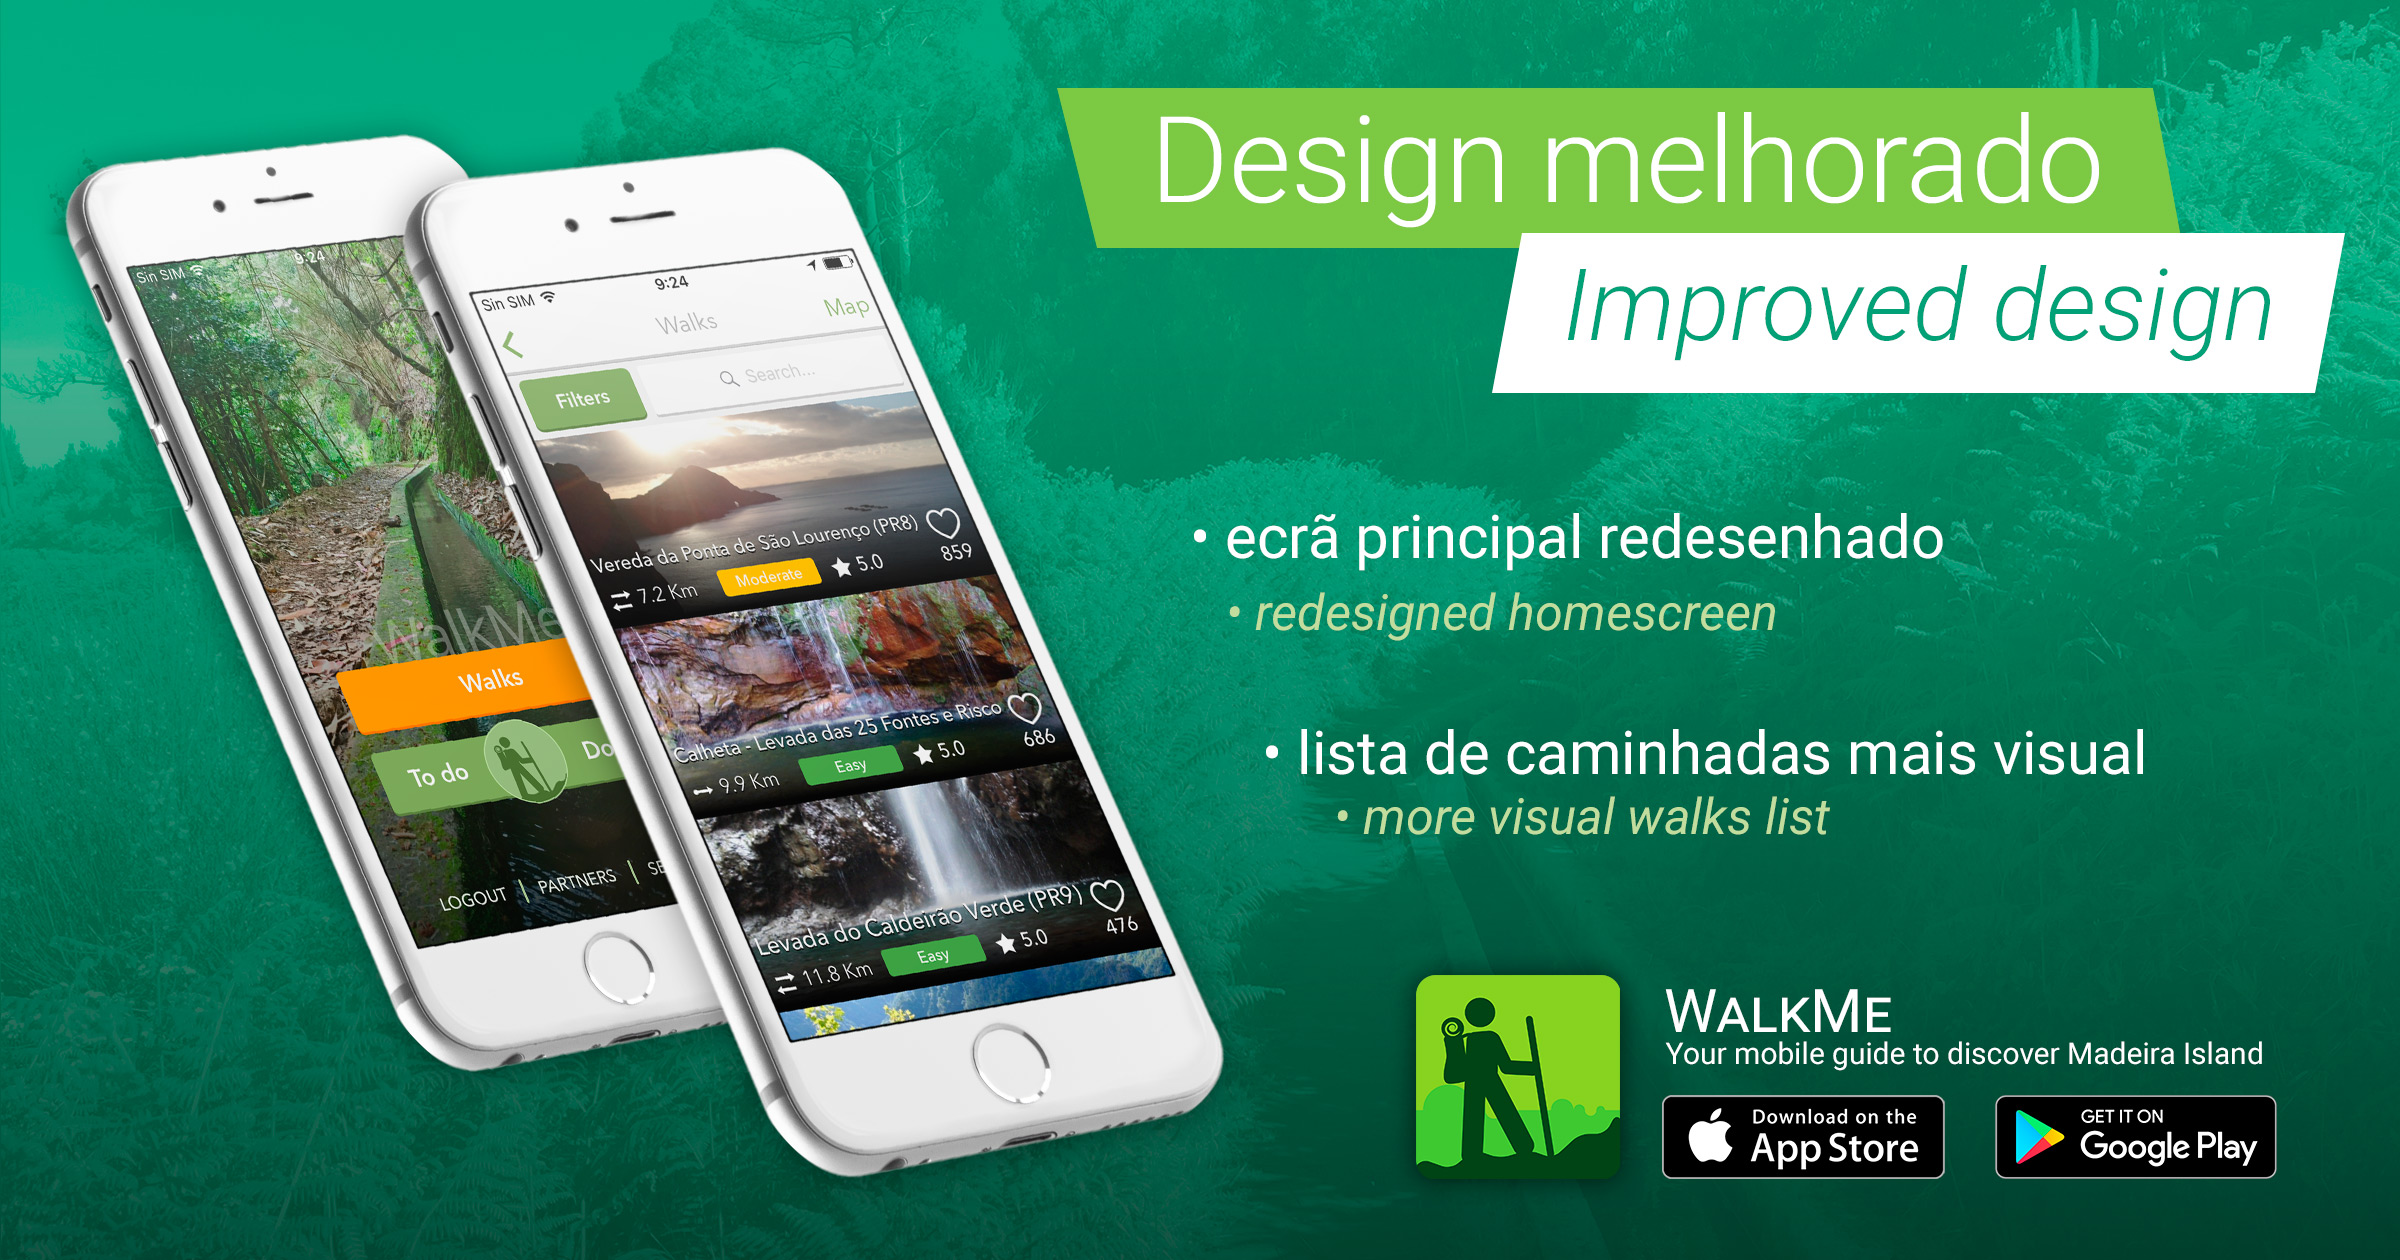 App walkme nueva versi n con muchas novedades walkme for Who can design an app for me